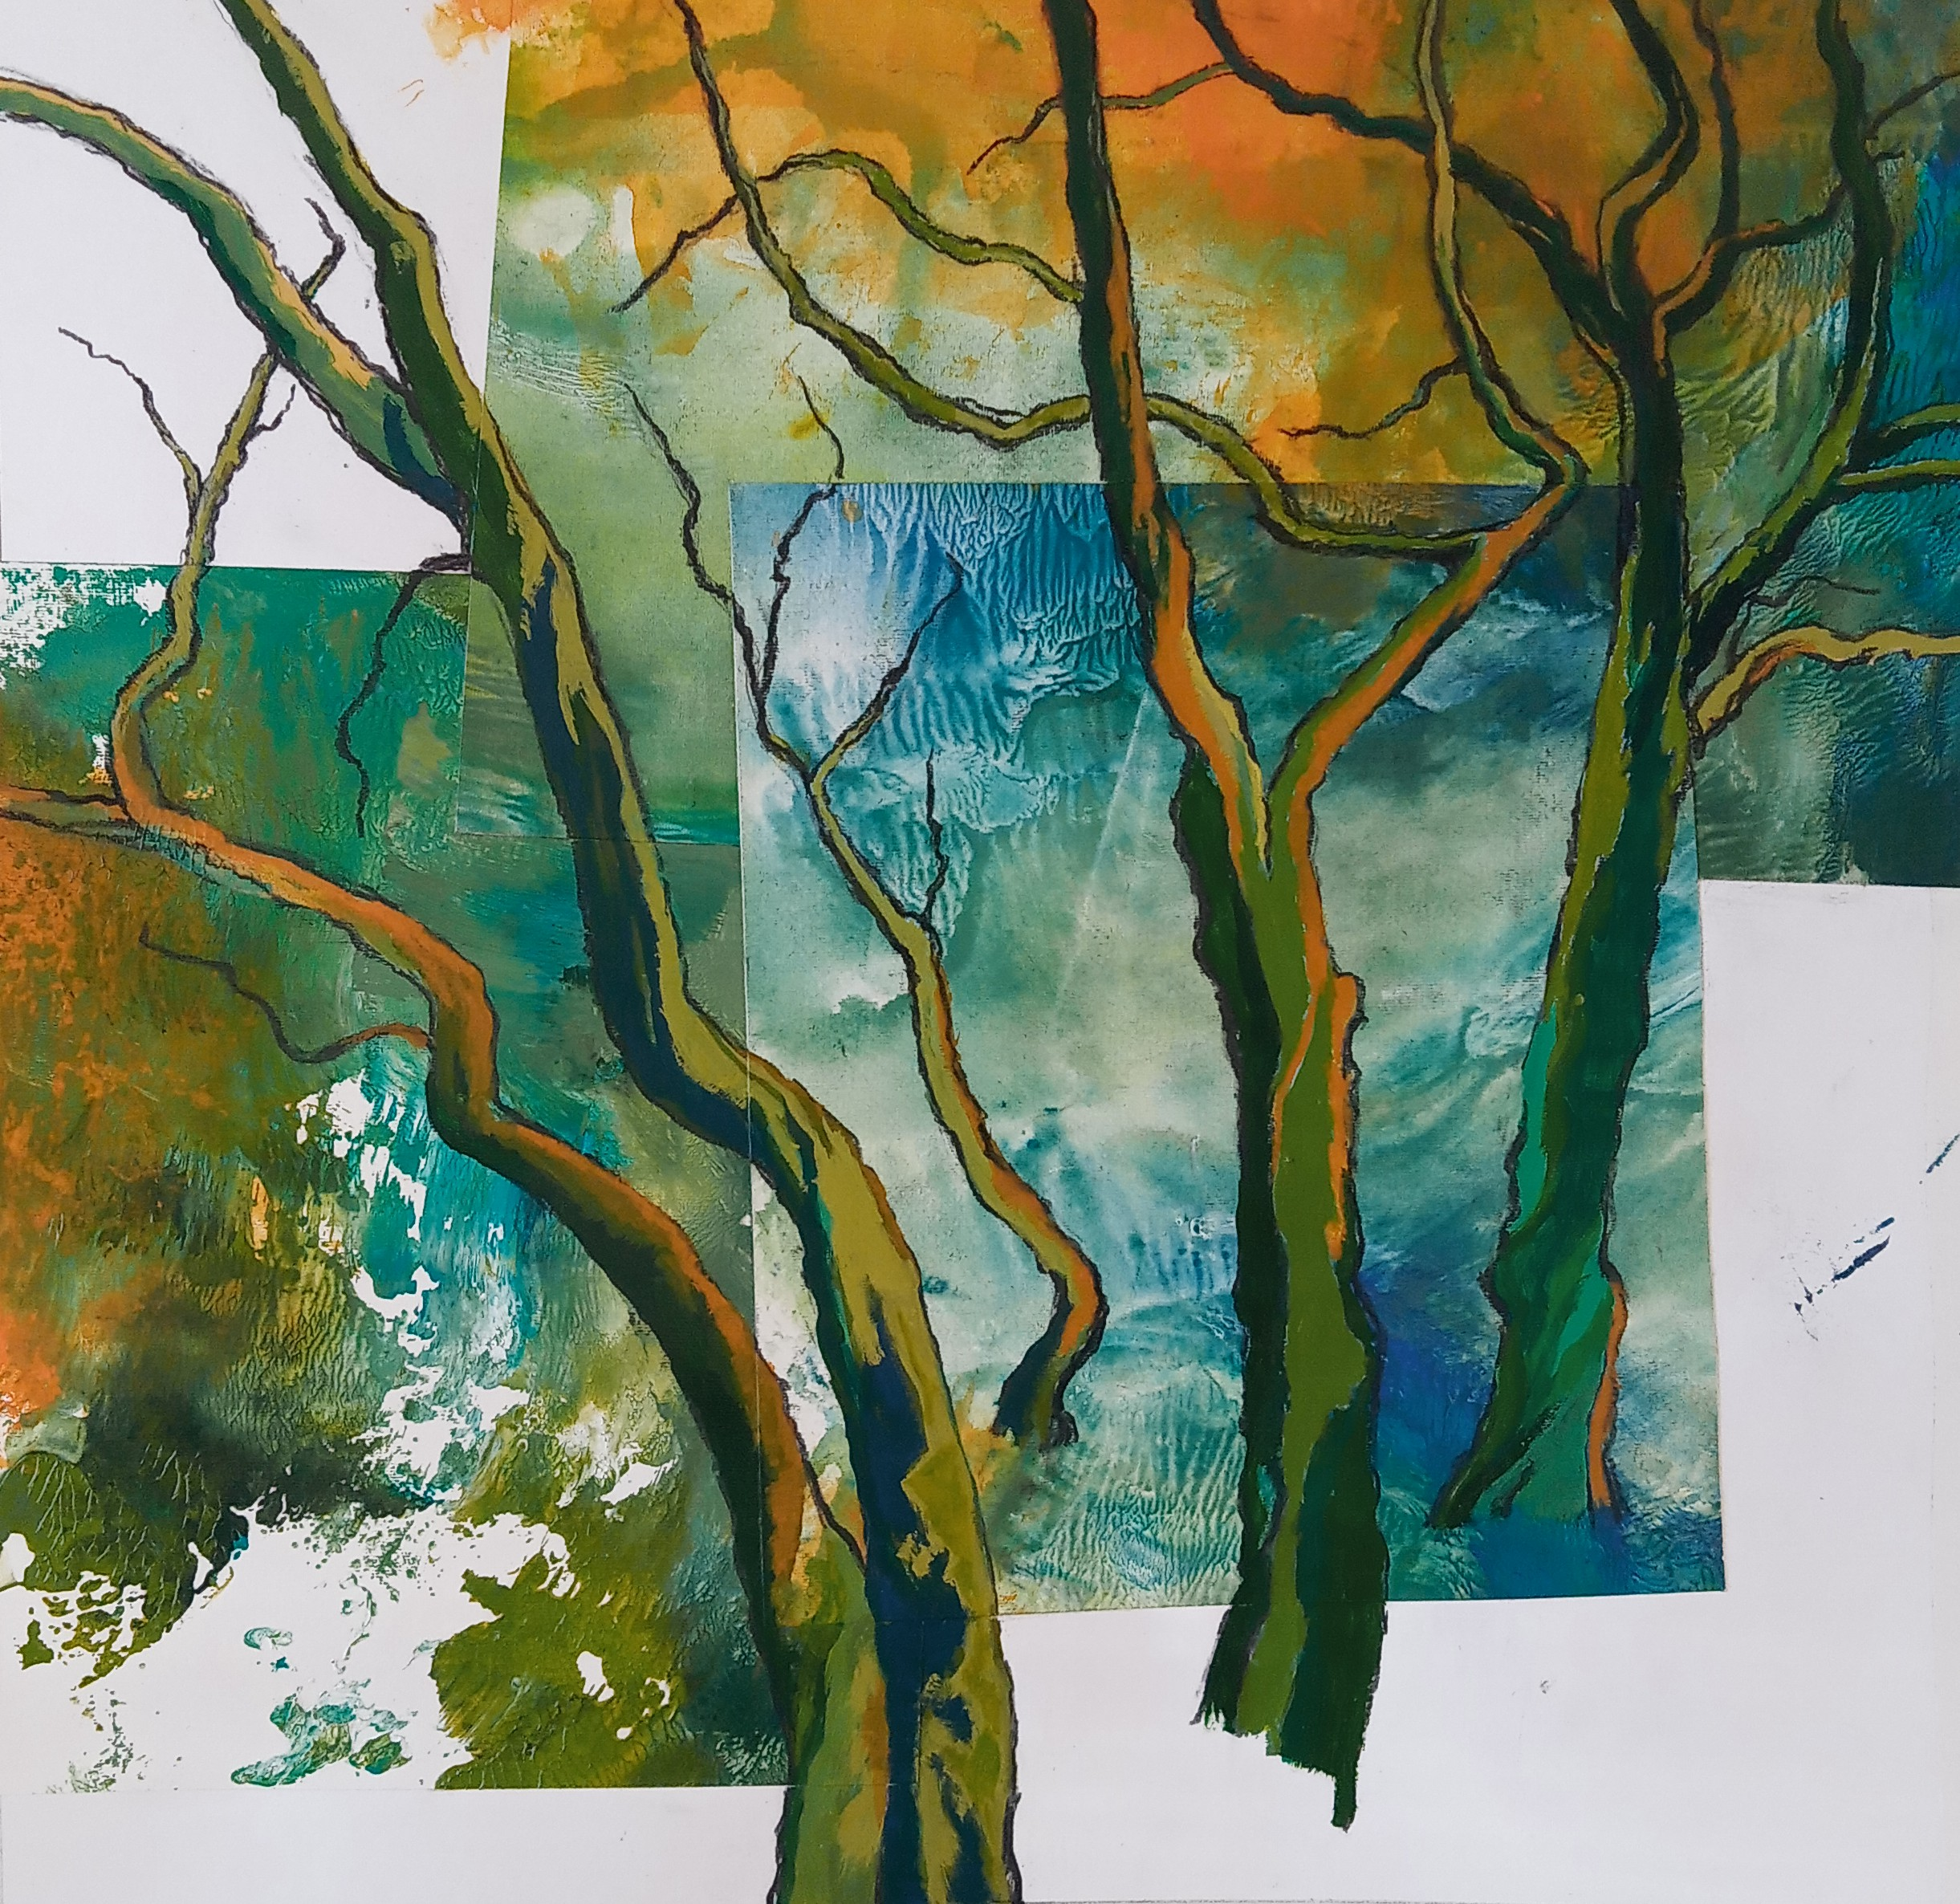 Currency Creek Eucalypts  Mixed media (collage, charcoal and acrylic)  52.5 x 52.5 cm  $400 framed